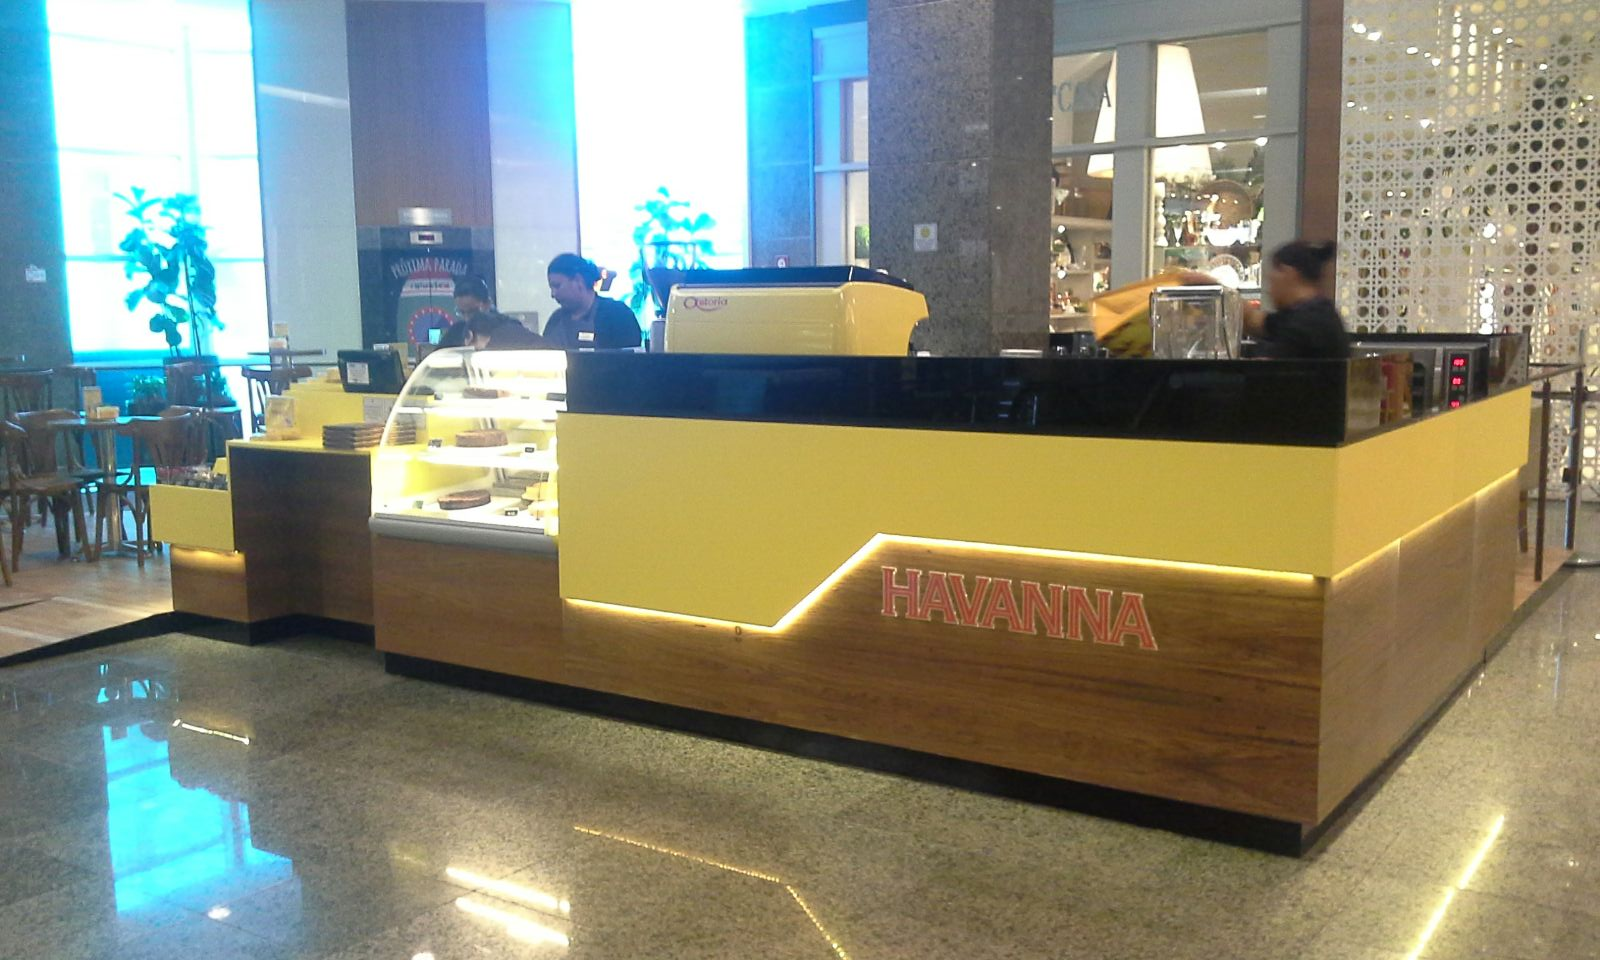 Havanna, quiosque, Shopping Rio Design Barra